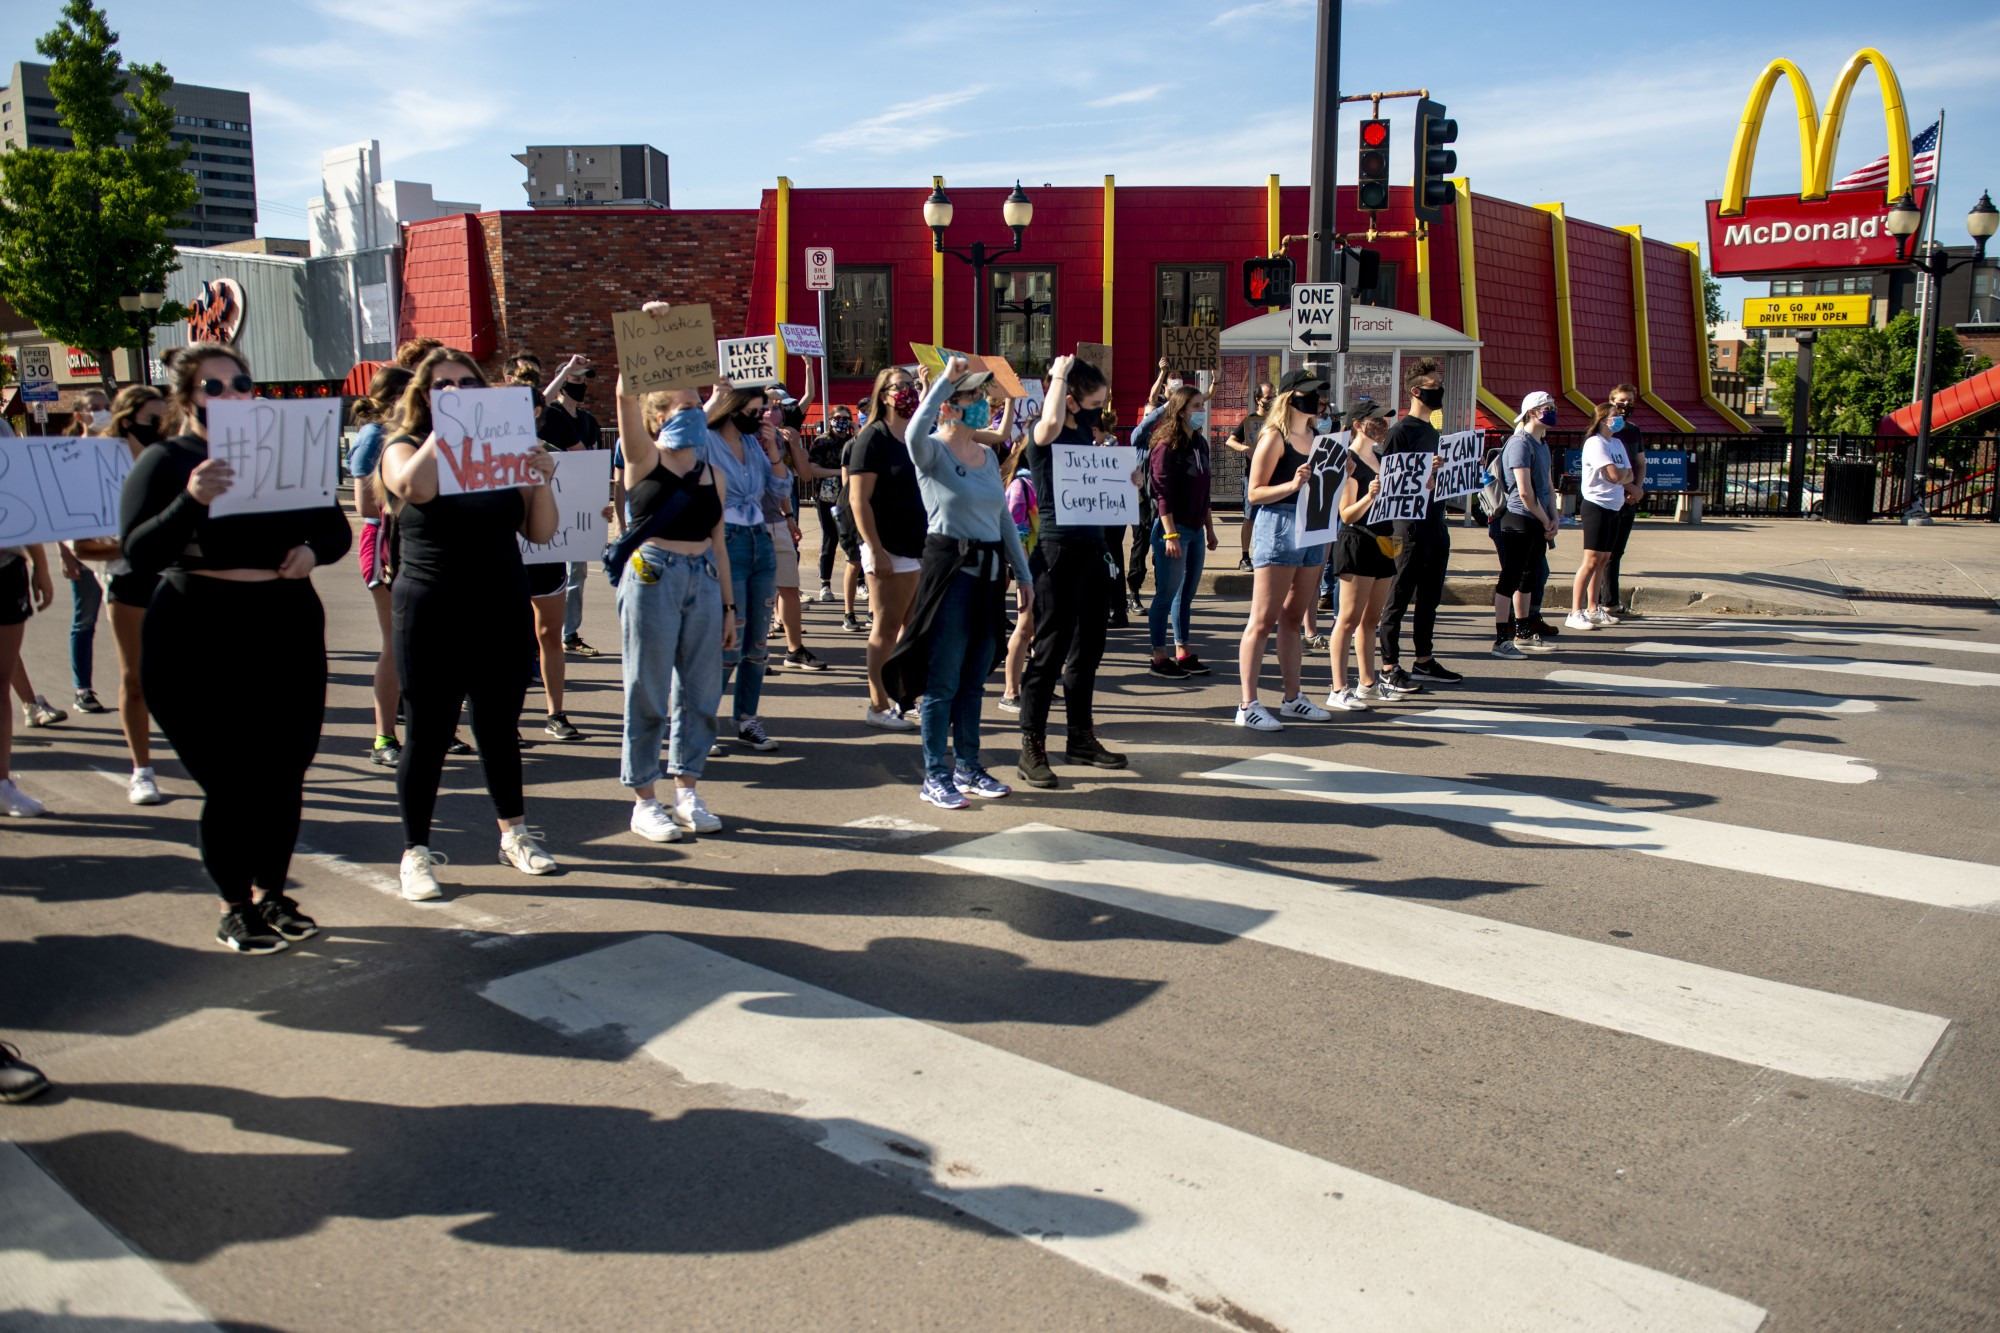 Students protest at the entrance of Dinkytown blocking traffic from passing through on SE 4th St on Sunday, May 31. Cars passing by frequently honked in support of the crowd.